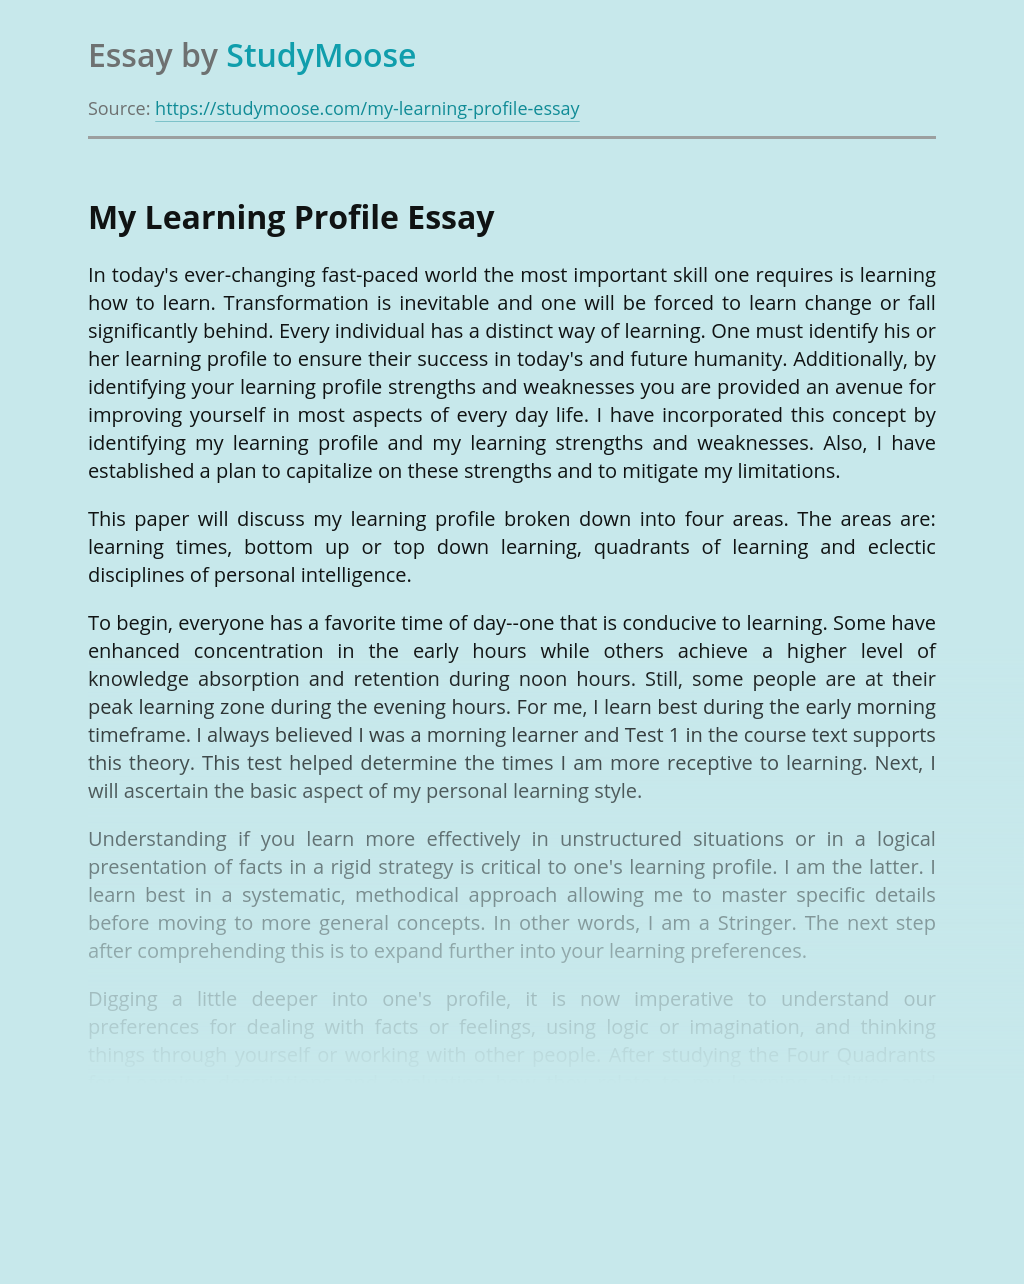 My Learning Profile